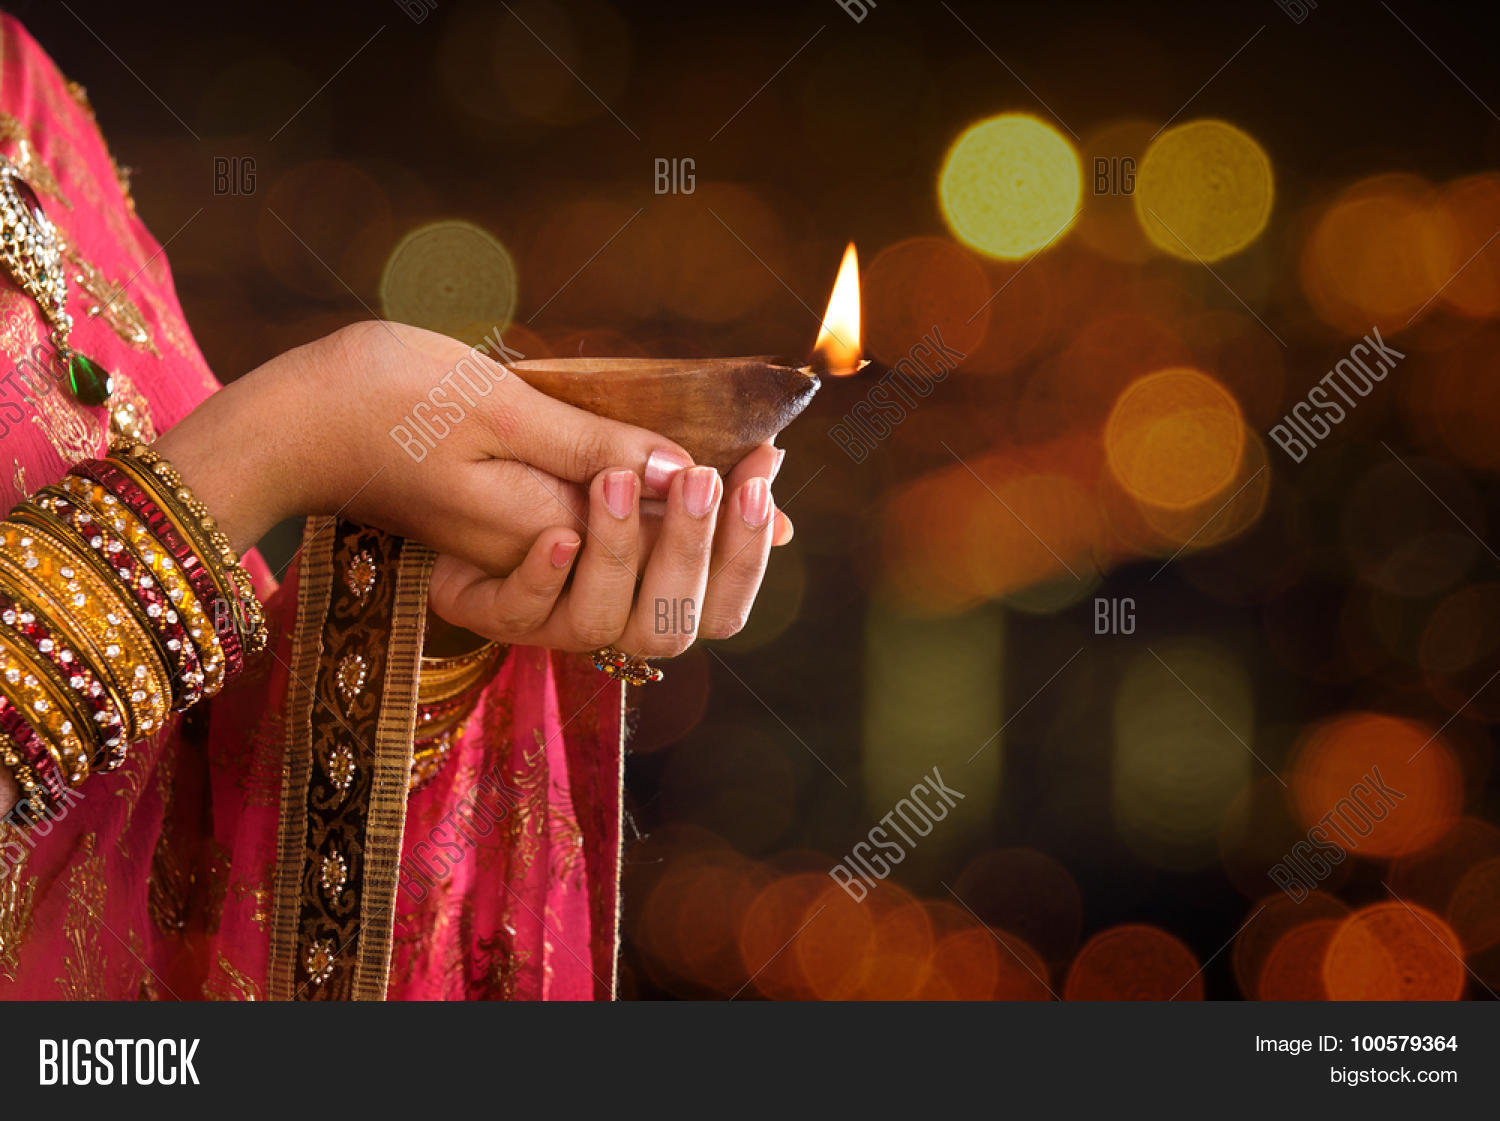 close up indian woman in traditional sari lighting oil lamp and